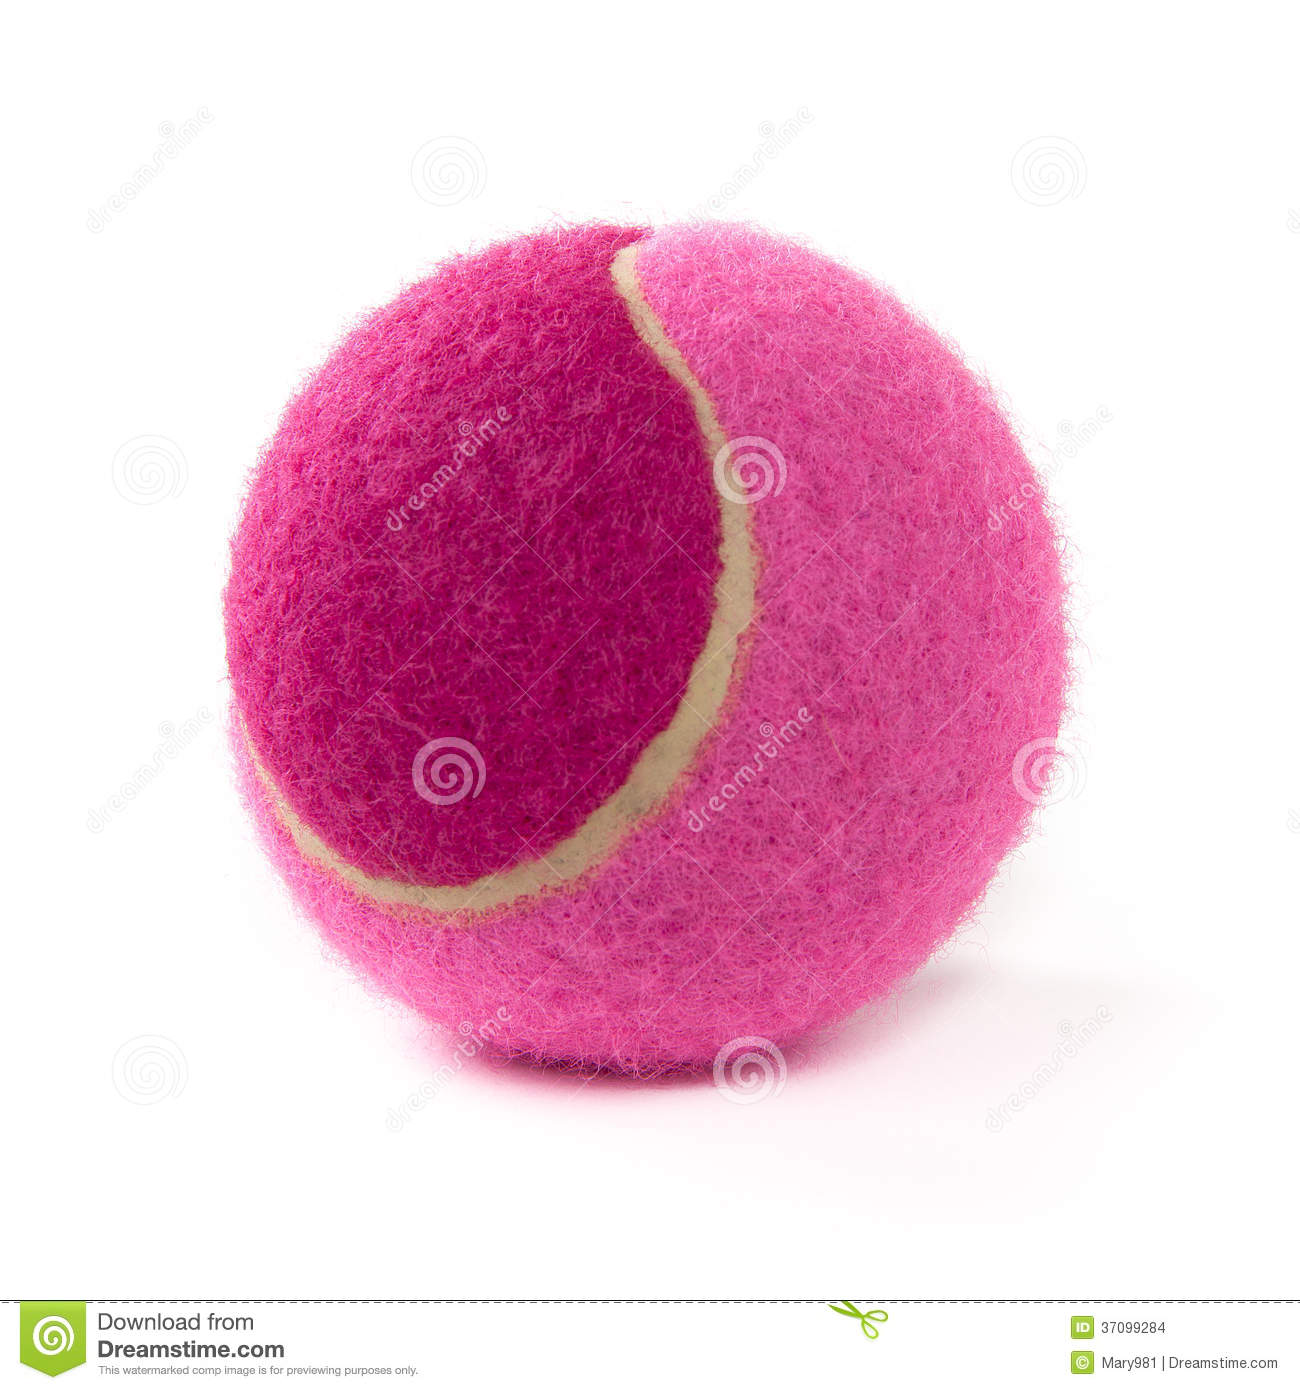 Pink Tennis Ball Stock Images - Image: 37099284